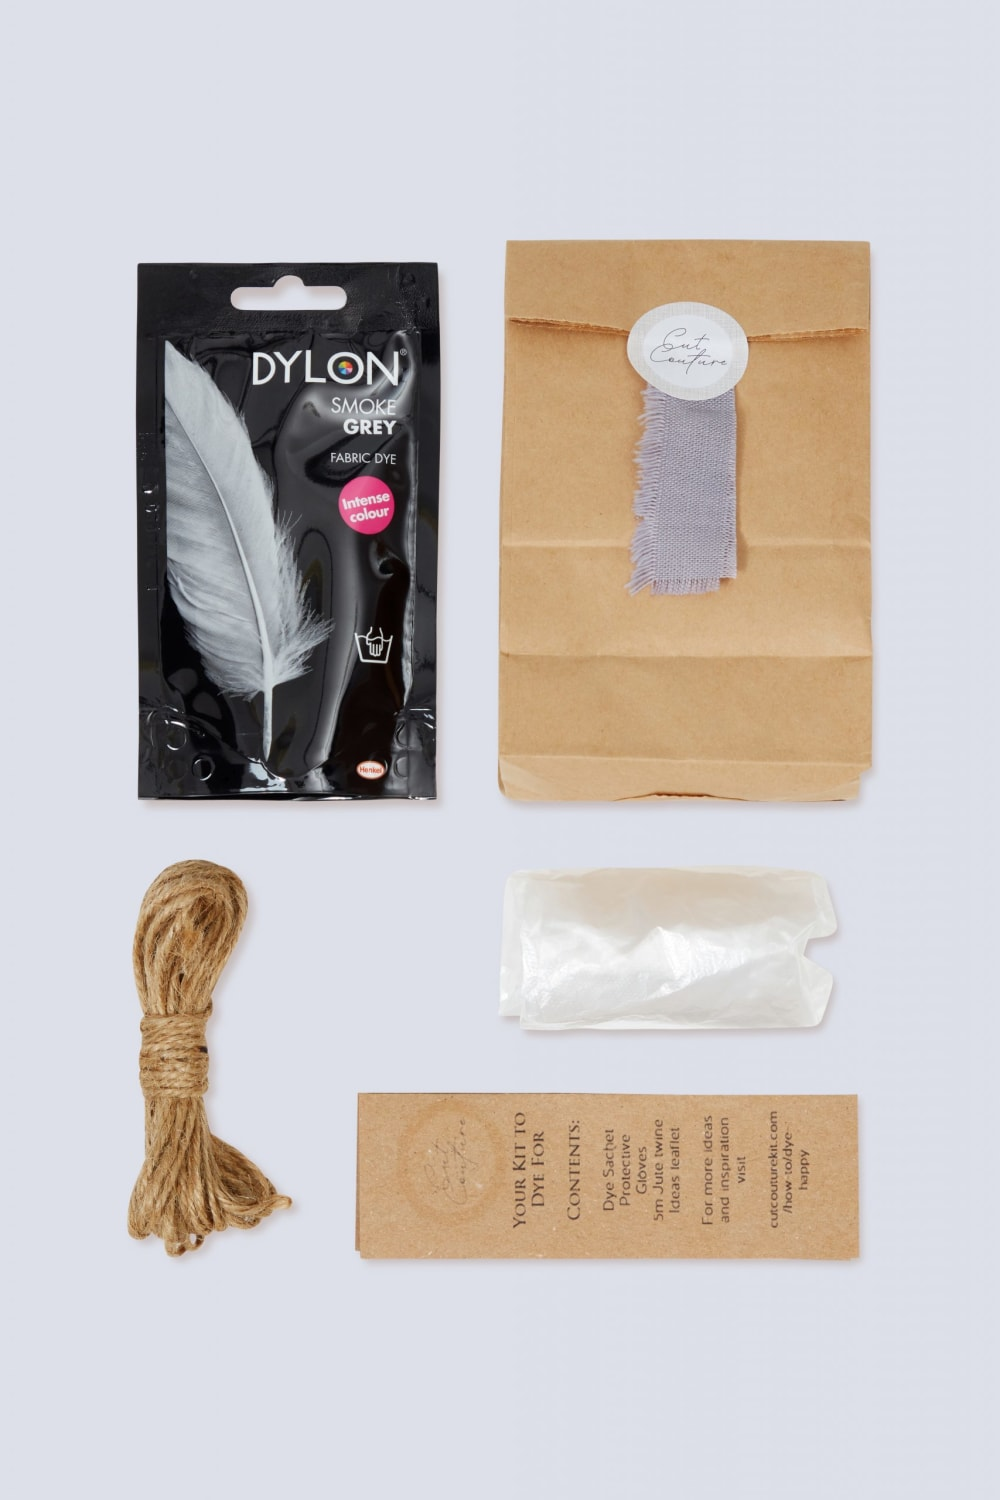 Smoke Grey Dylon dye jute twine gloves information leaflet with bag and colour swatch